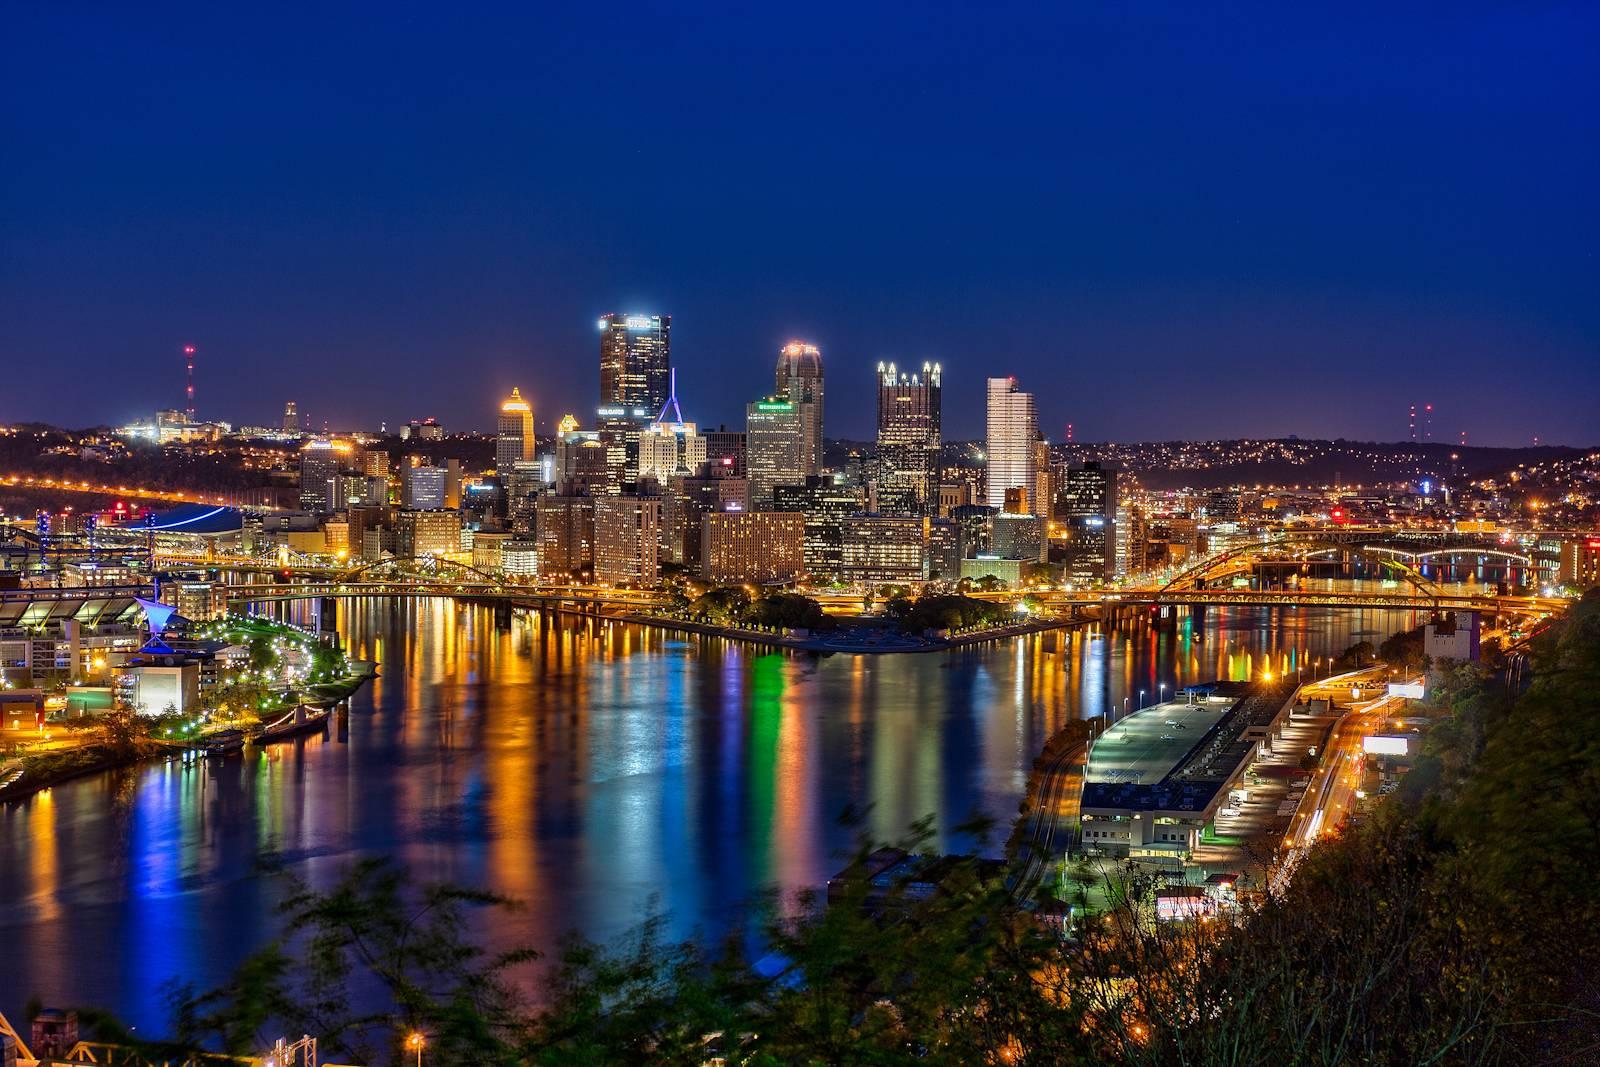 Pittsburgh At Night Wallpaper